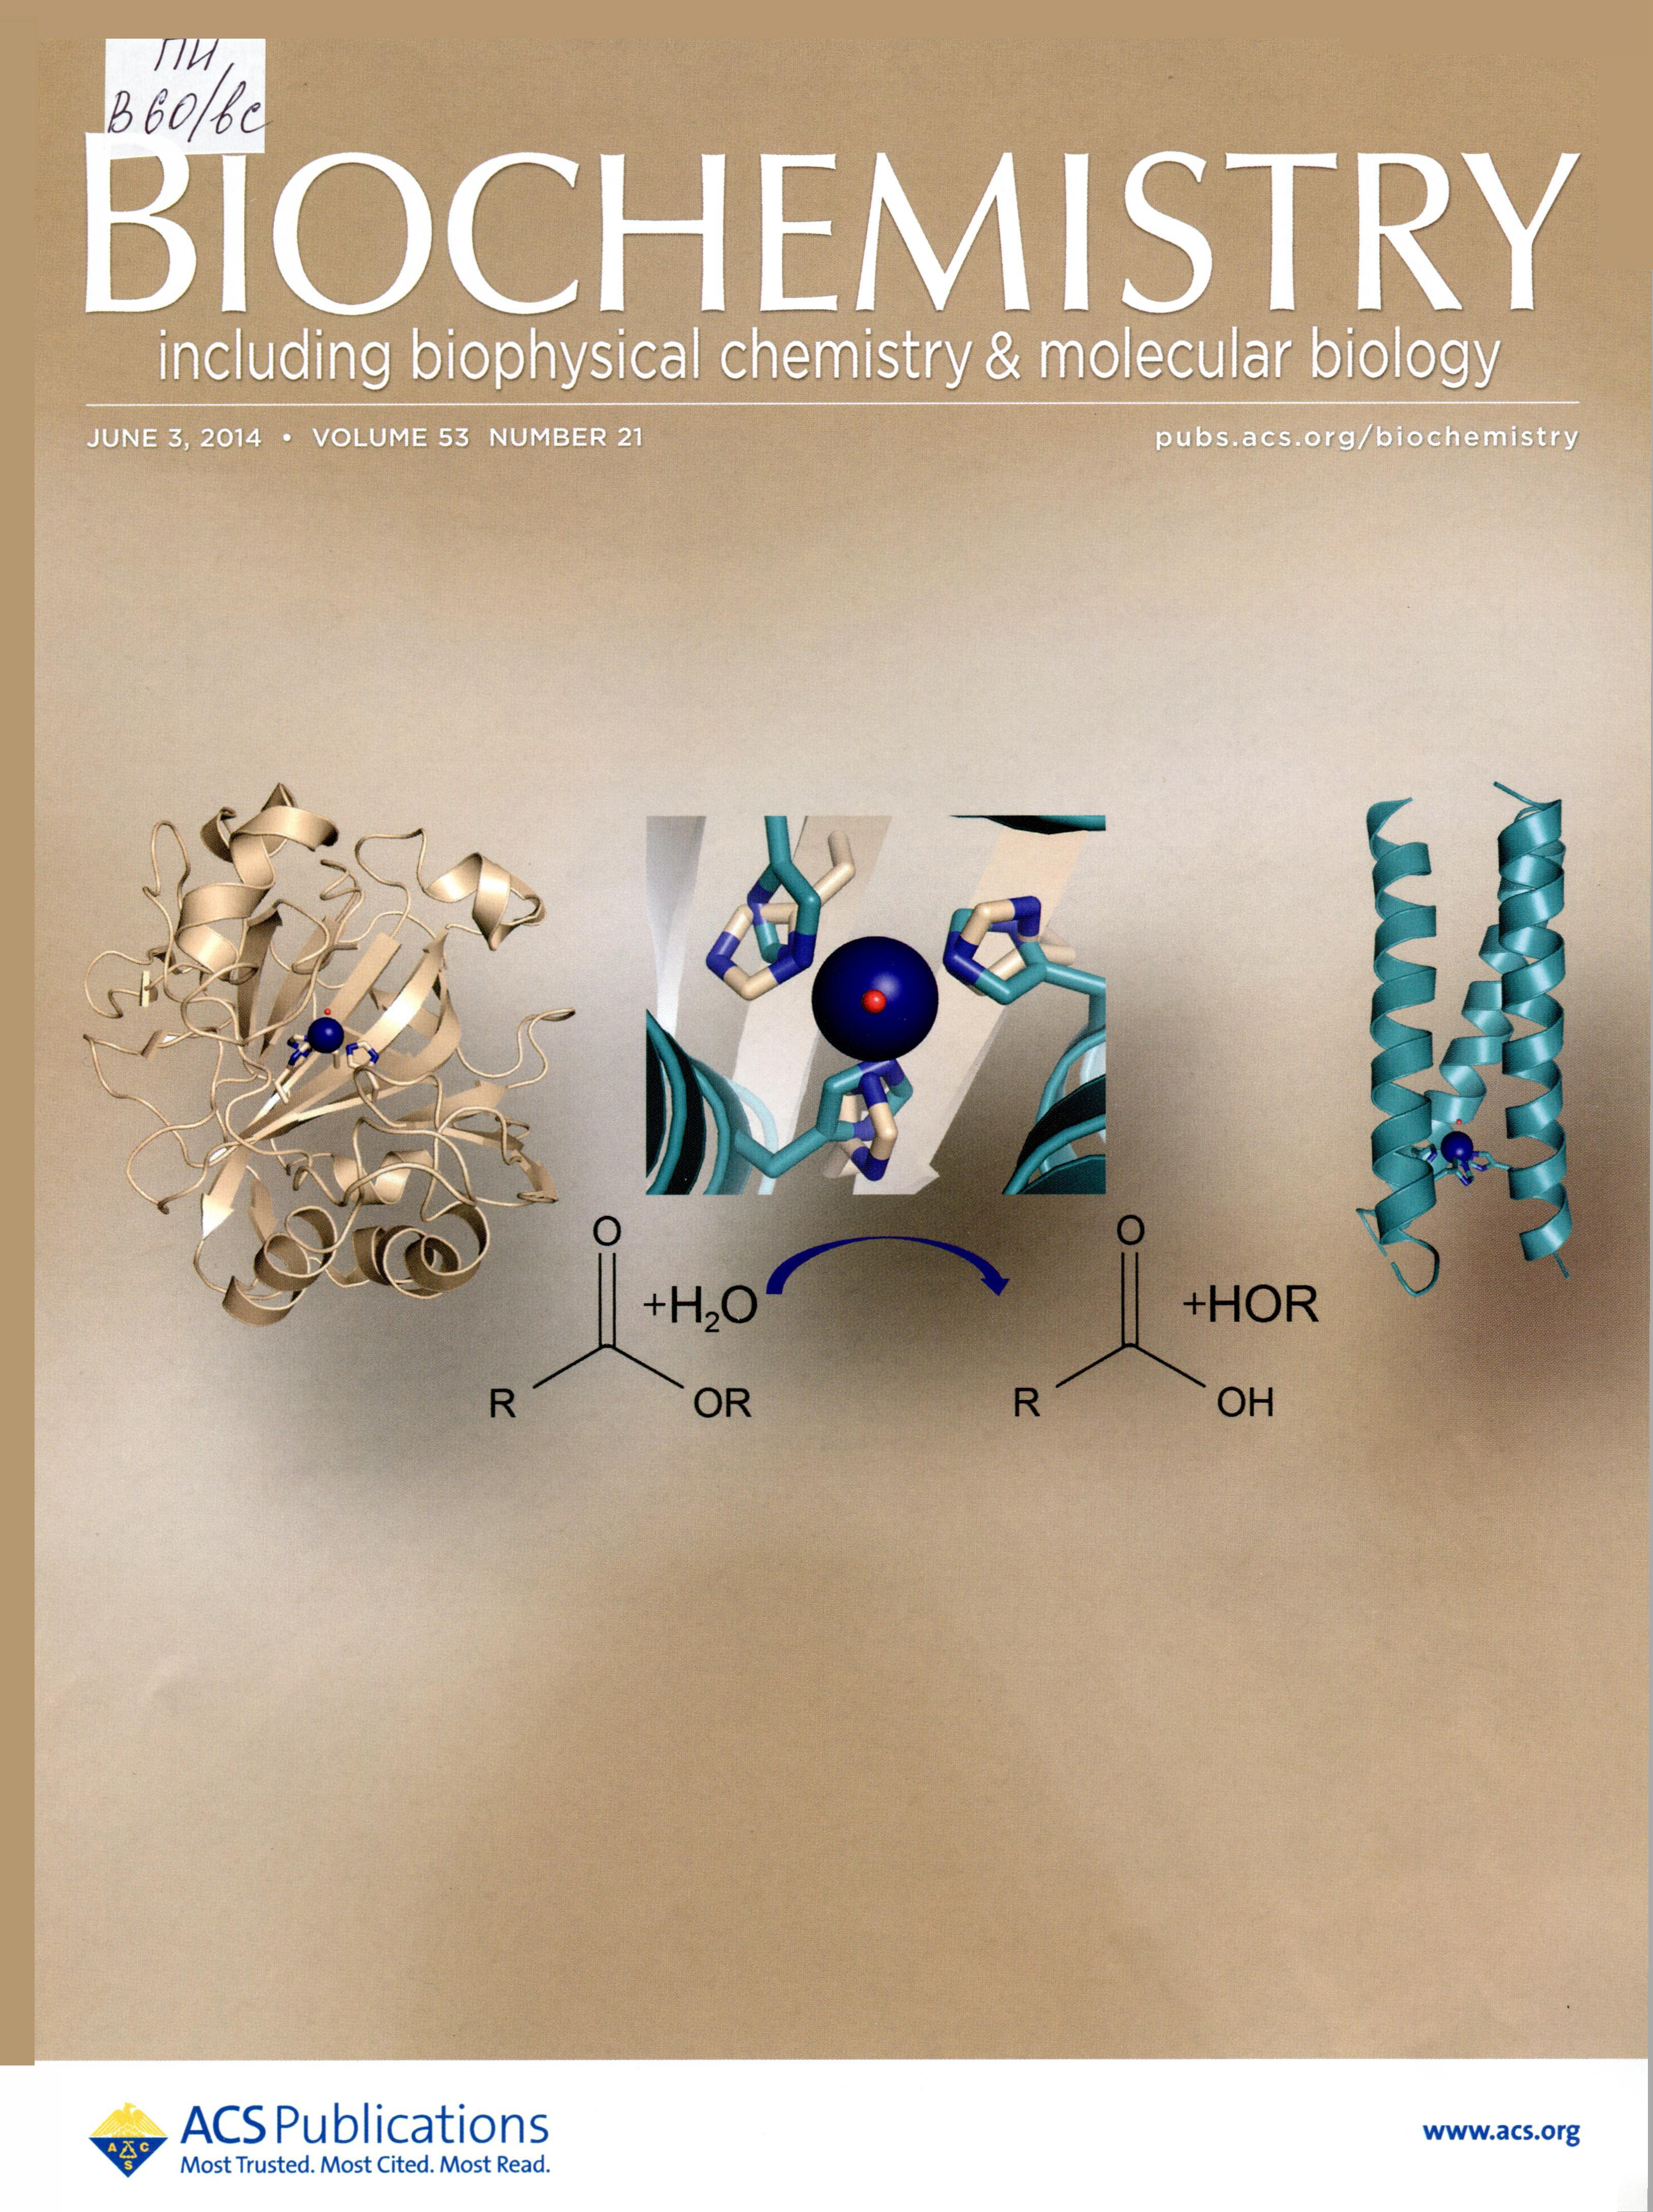 biochemistry 2014 Biochemistry and biophysics 2014 publications ahern, kevin ahern, kevin (2014) the citric acid cycle biochemistry and molecular biology education 42, 510 ahern, kevin (2014) merry metabolic and miscellanic melodies davinci press, isbn 978-1.